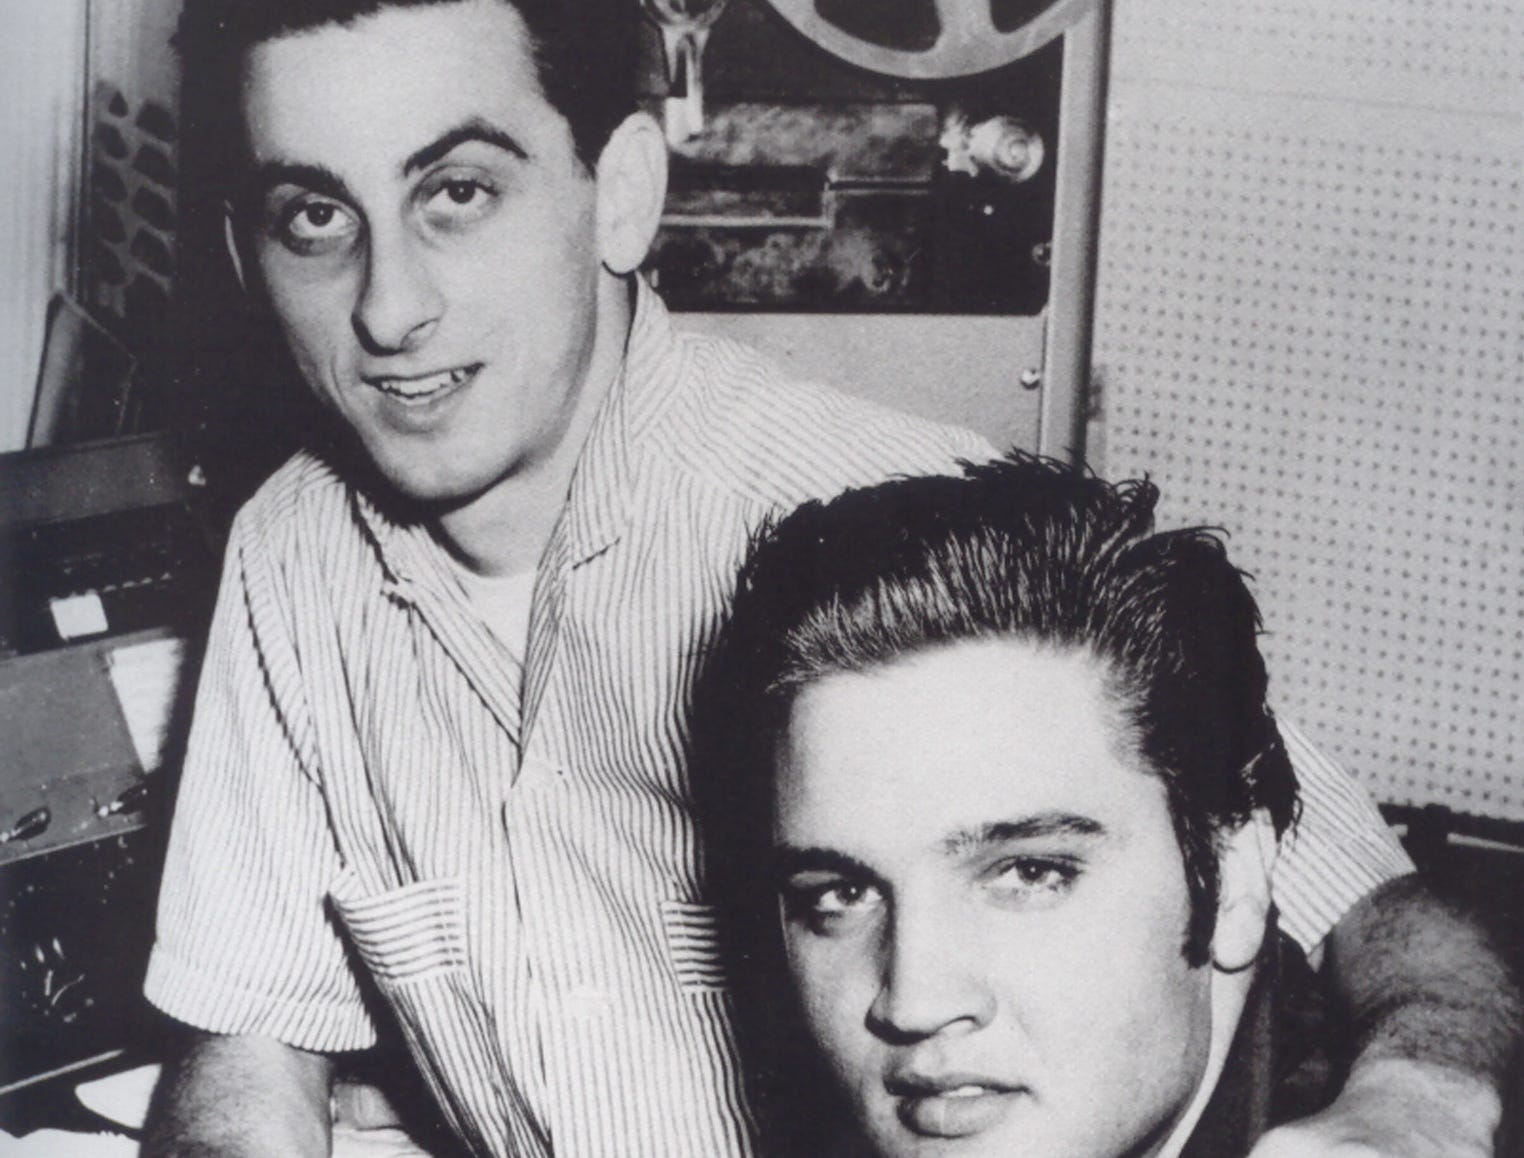 Elvis Presley and George Klein are at WMC radio station in 1956.